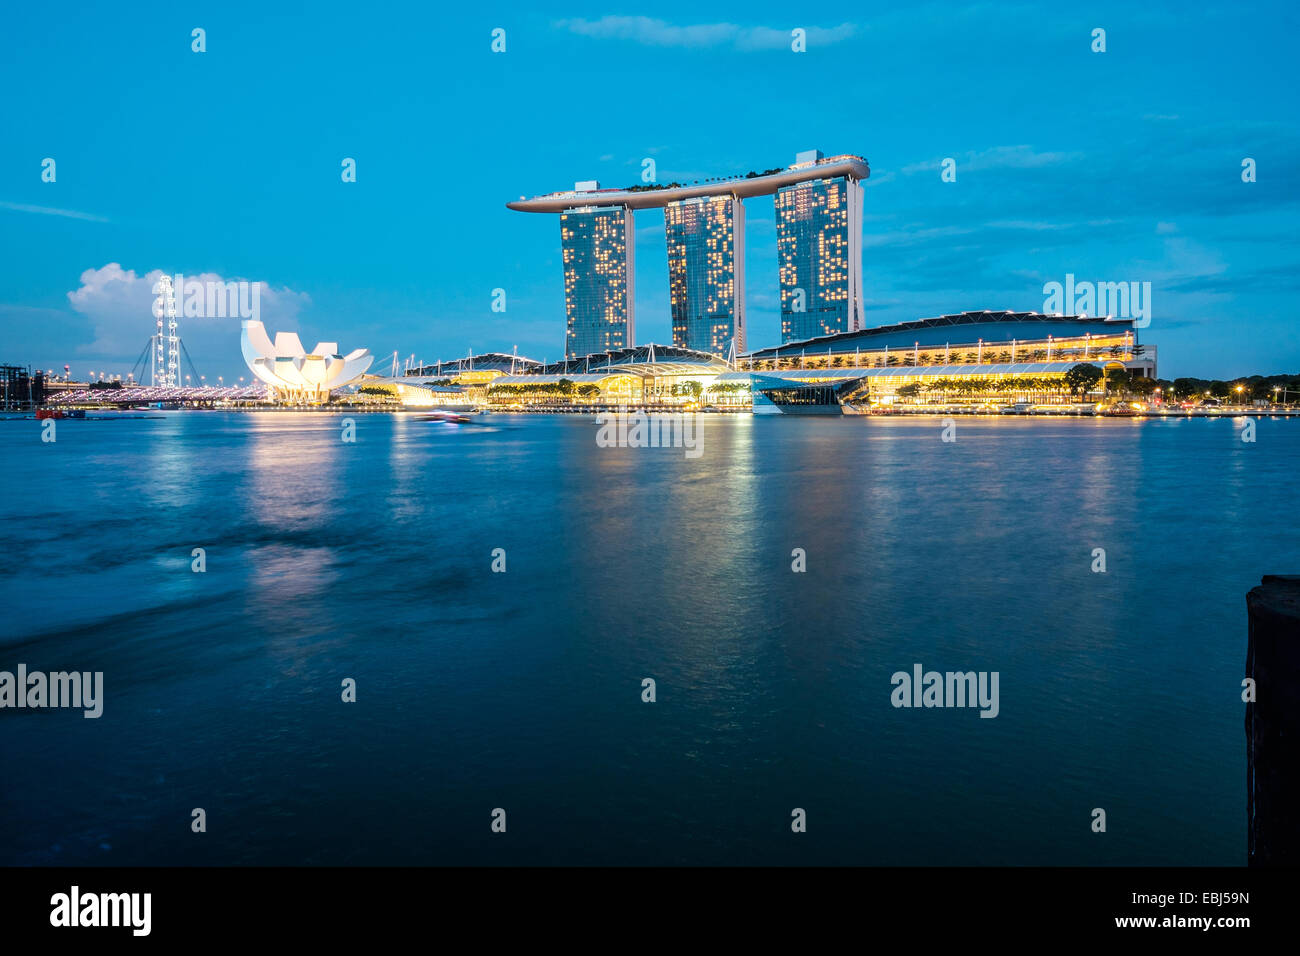 Moderne Architektur an der Bucht in Singapur Stockbild